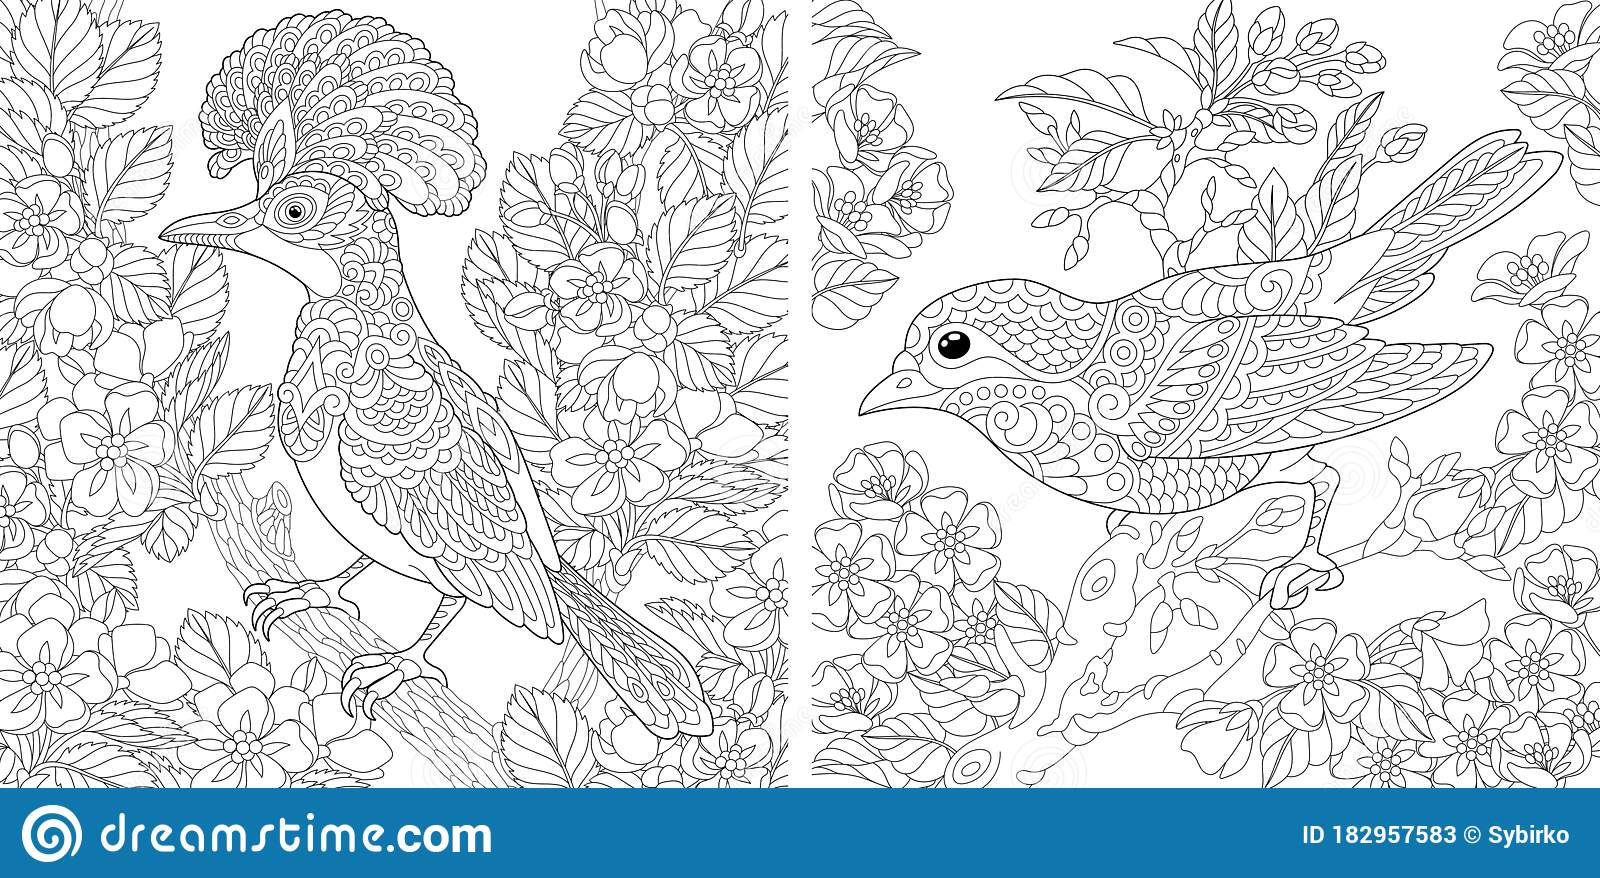 Coloring Pages With Birds In Floral Garden Stock Vector